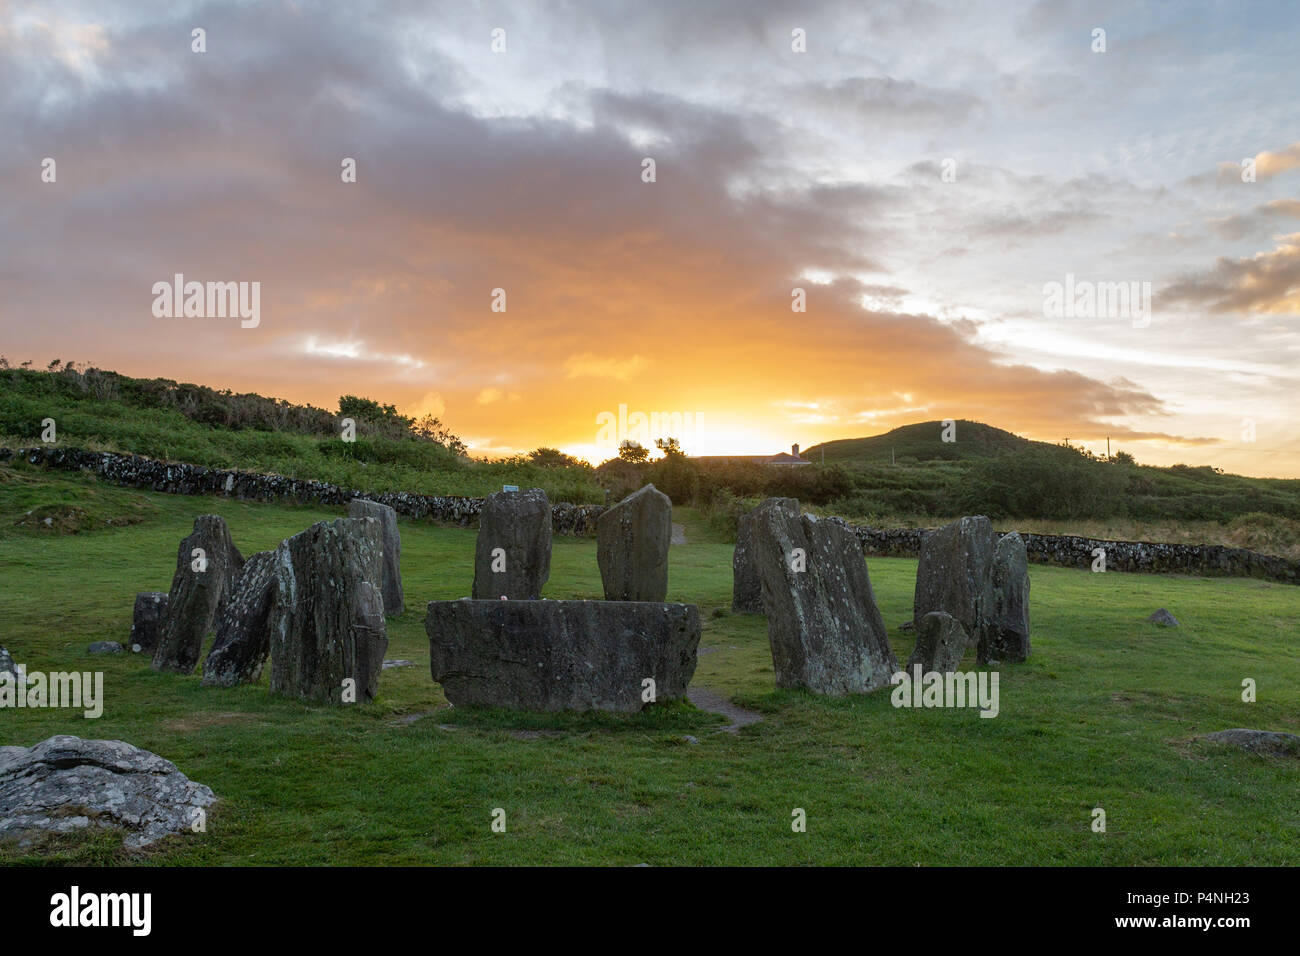 sunrise-over-drombeg-stone-circle-marking-the-summer-solstice-in-west-cork-ireland-P4NH23.jpg